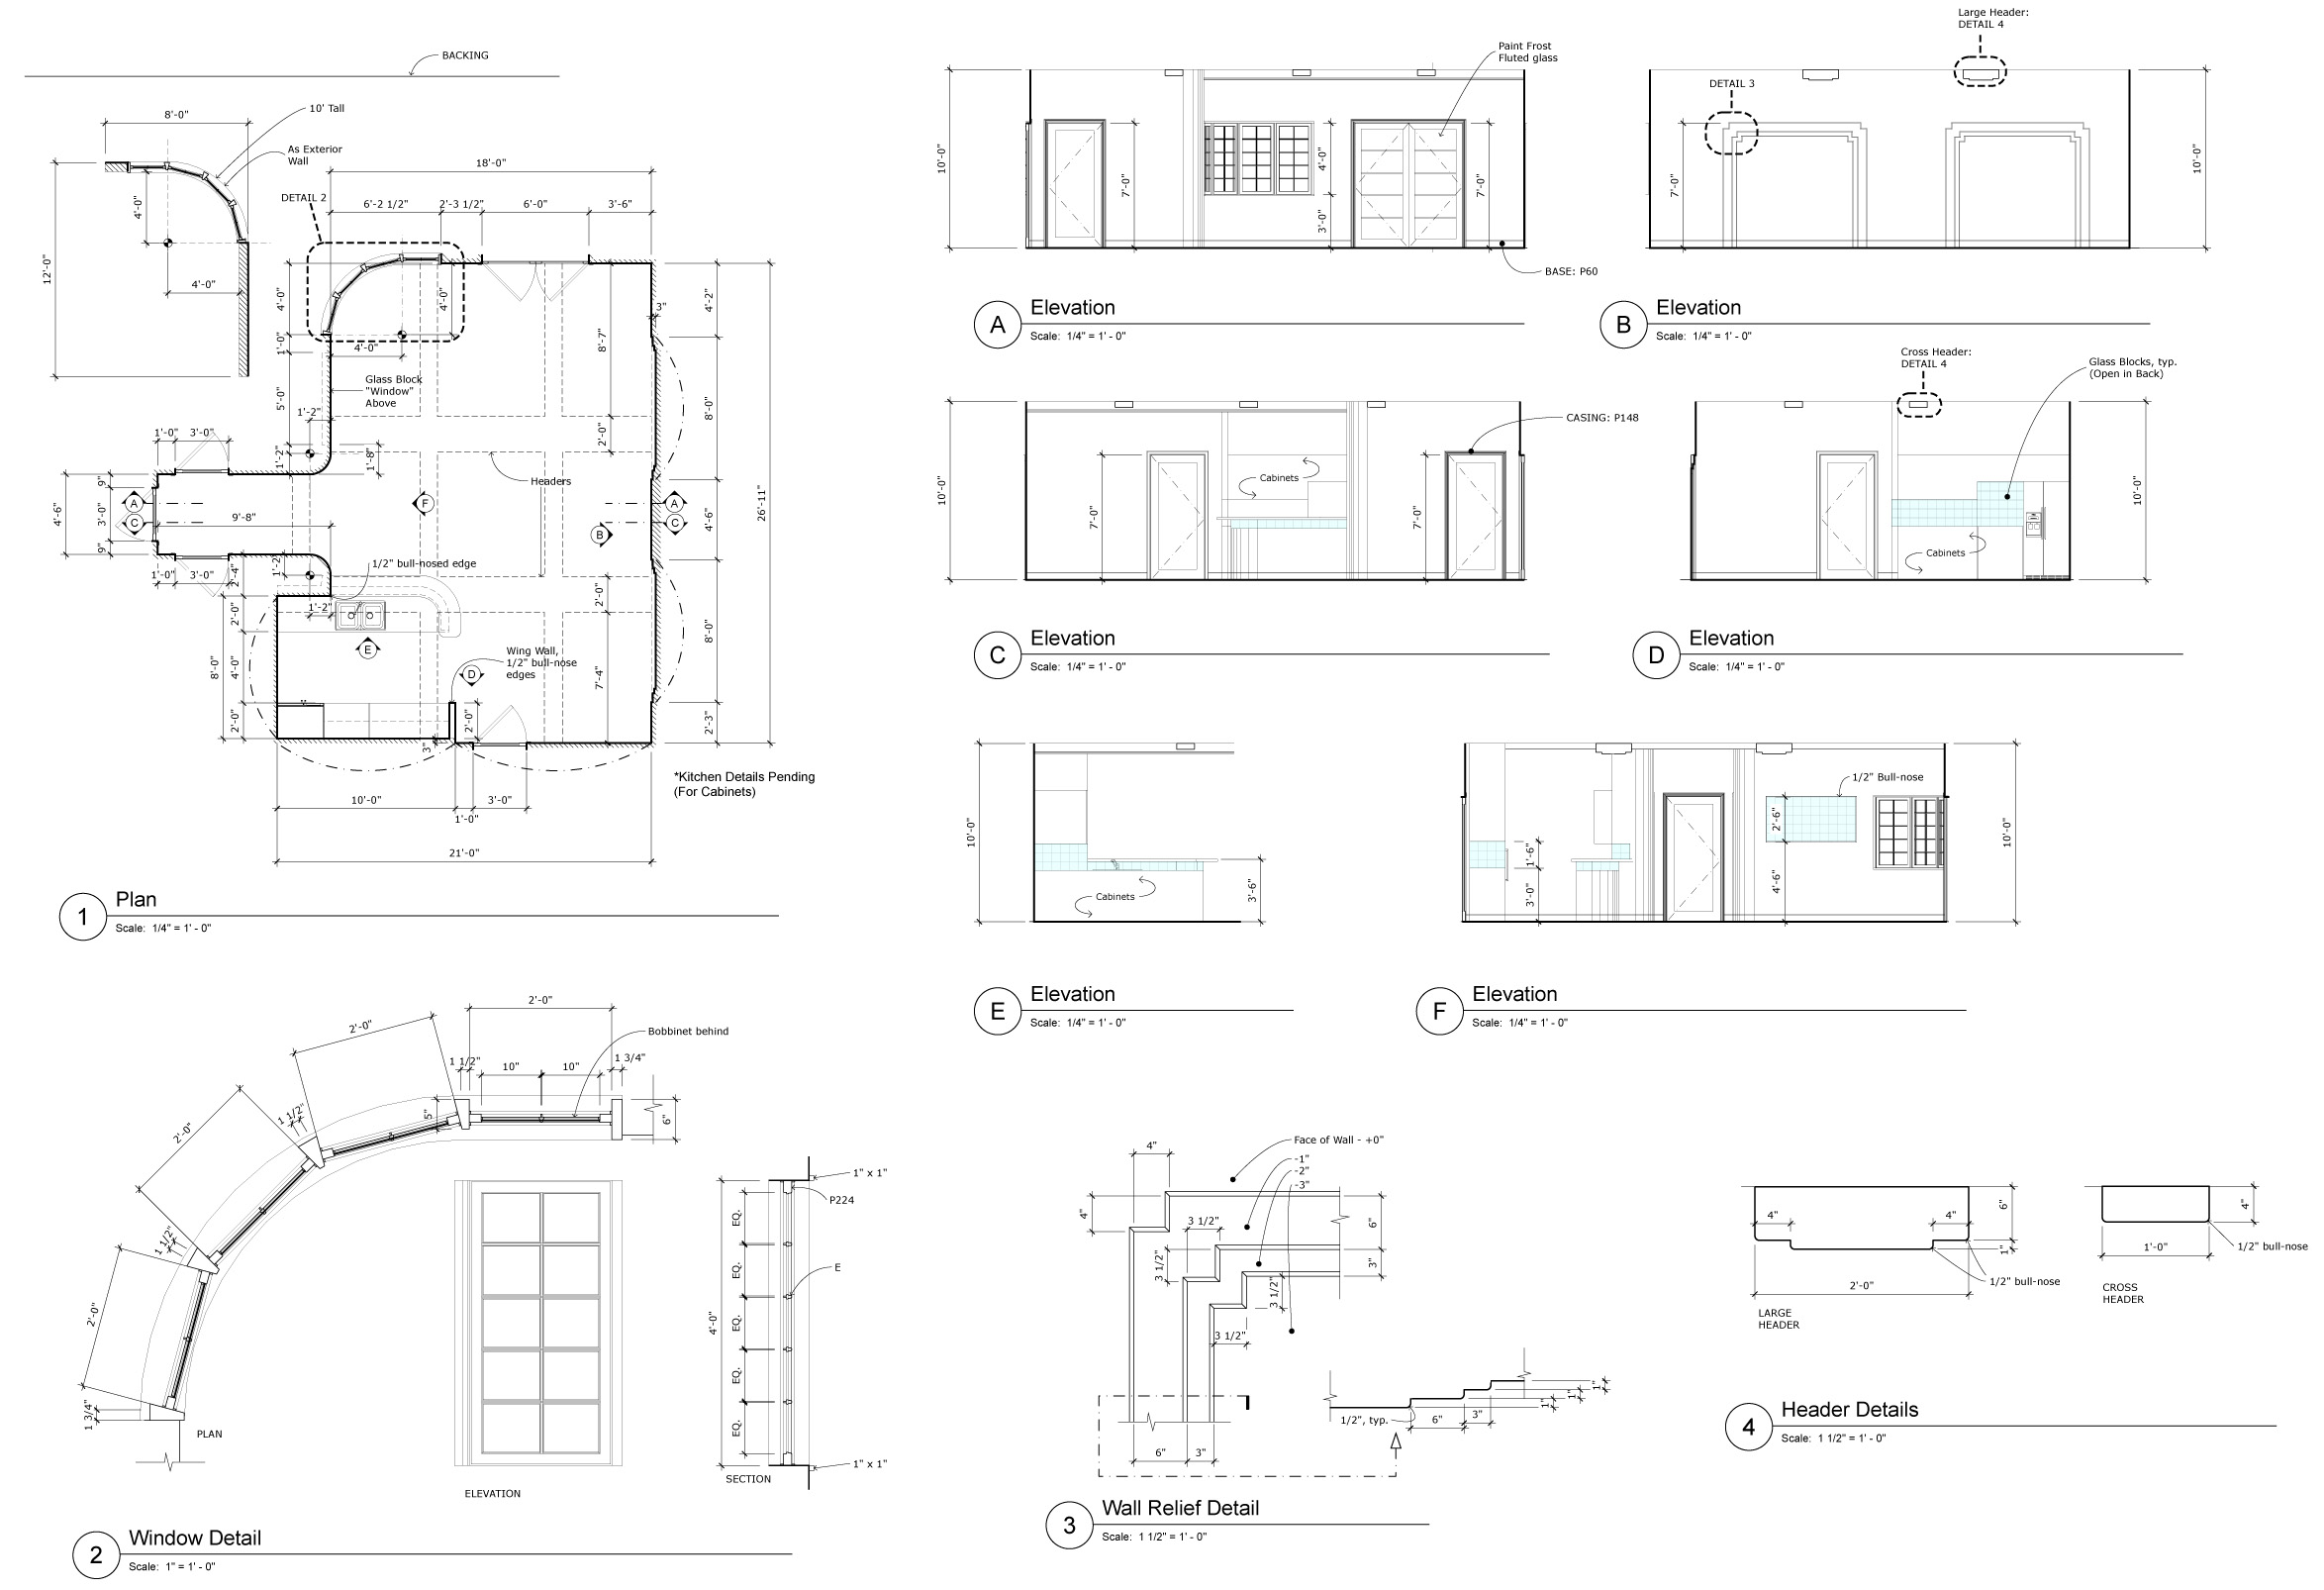 ROGELIO'S CONDO - WORKING DRAWING